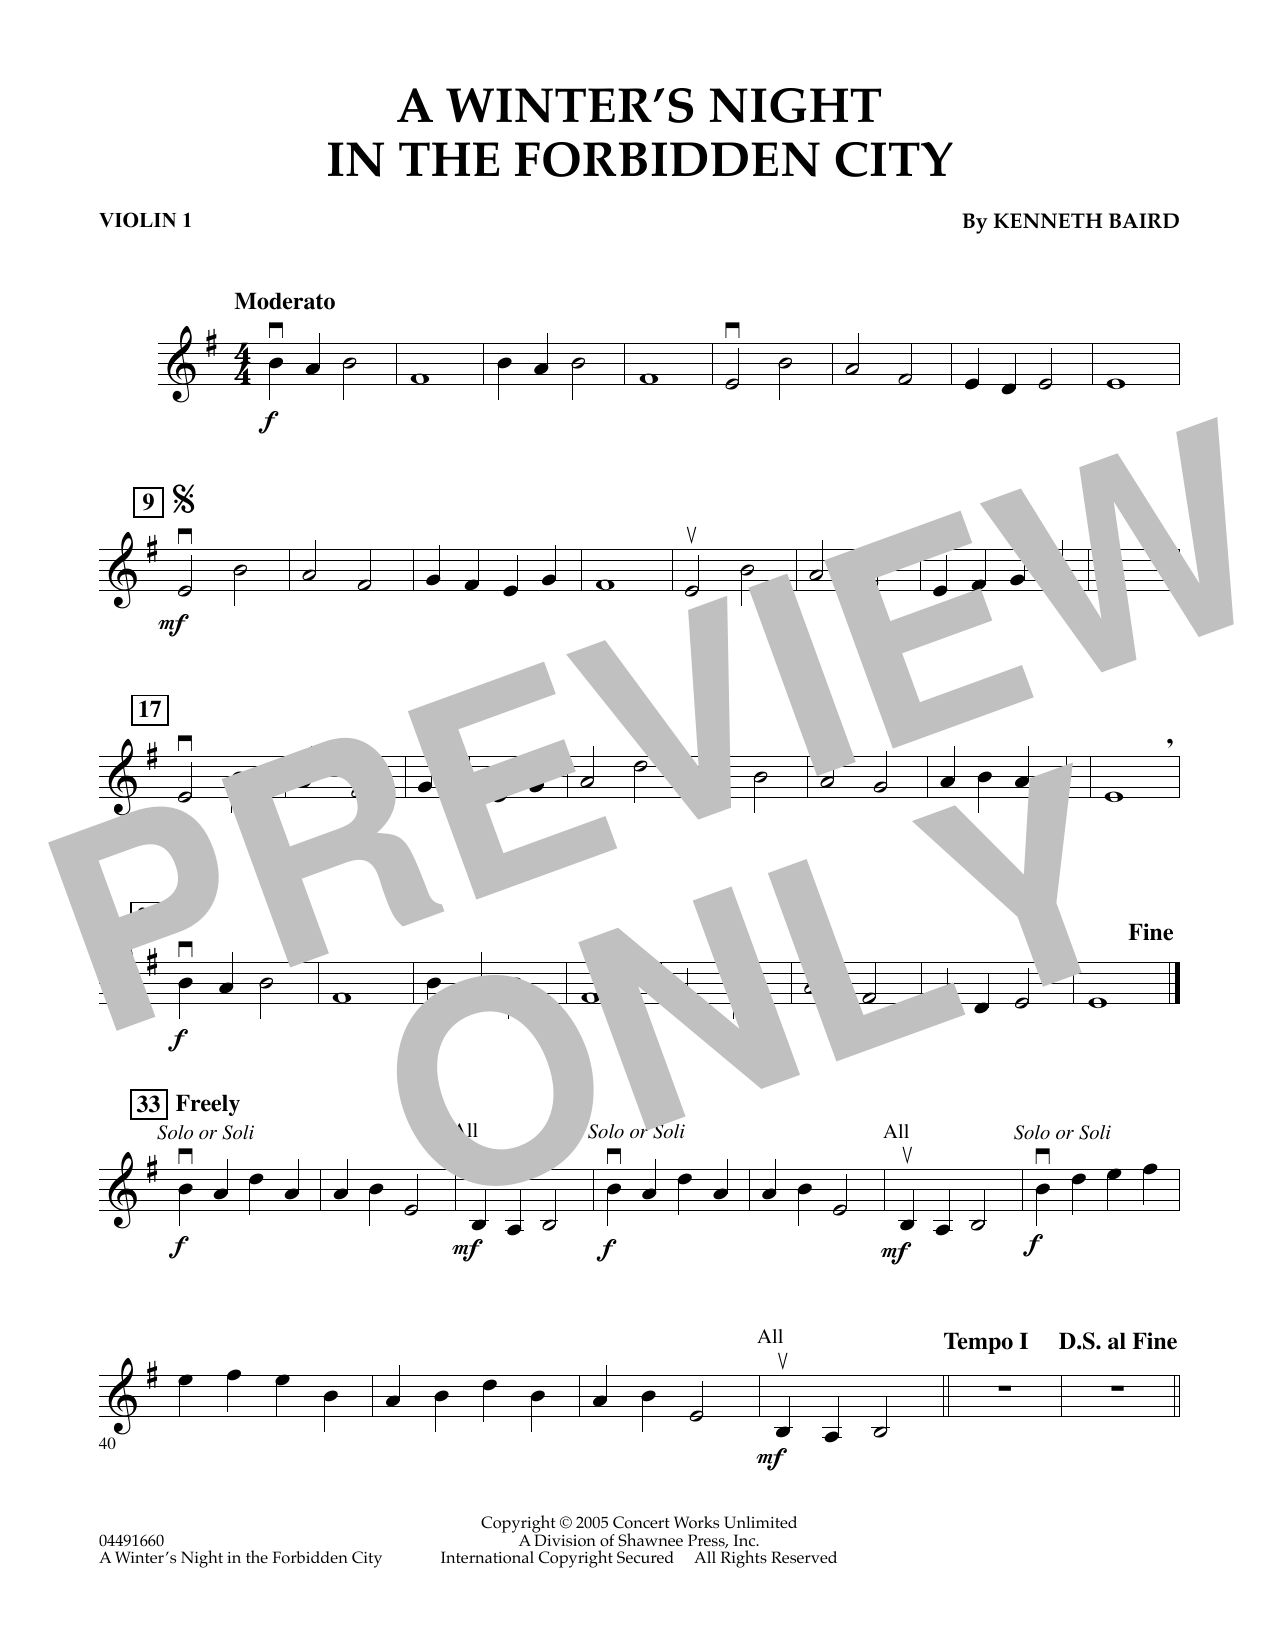 Kenneth Baird A Winter's Night in the Forbidden City - Violin 1 sheet music notes and chords. Download Printable PDF.